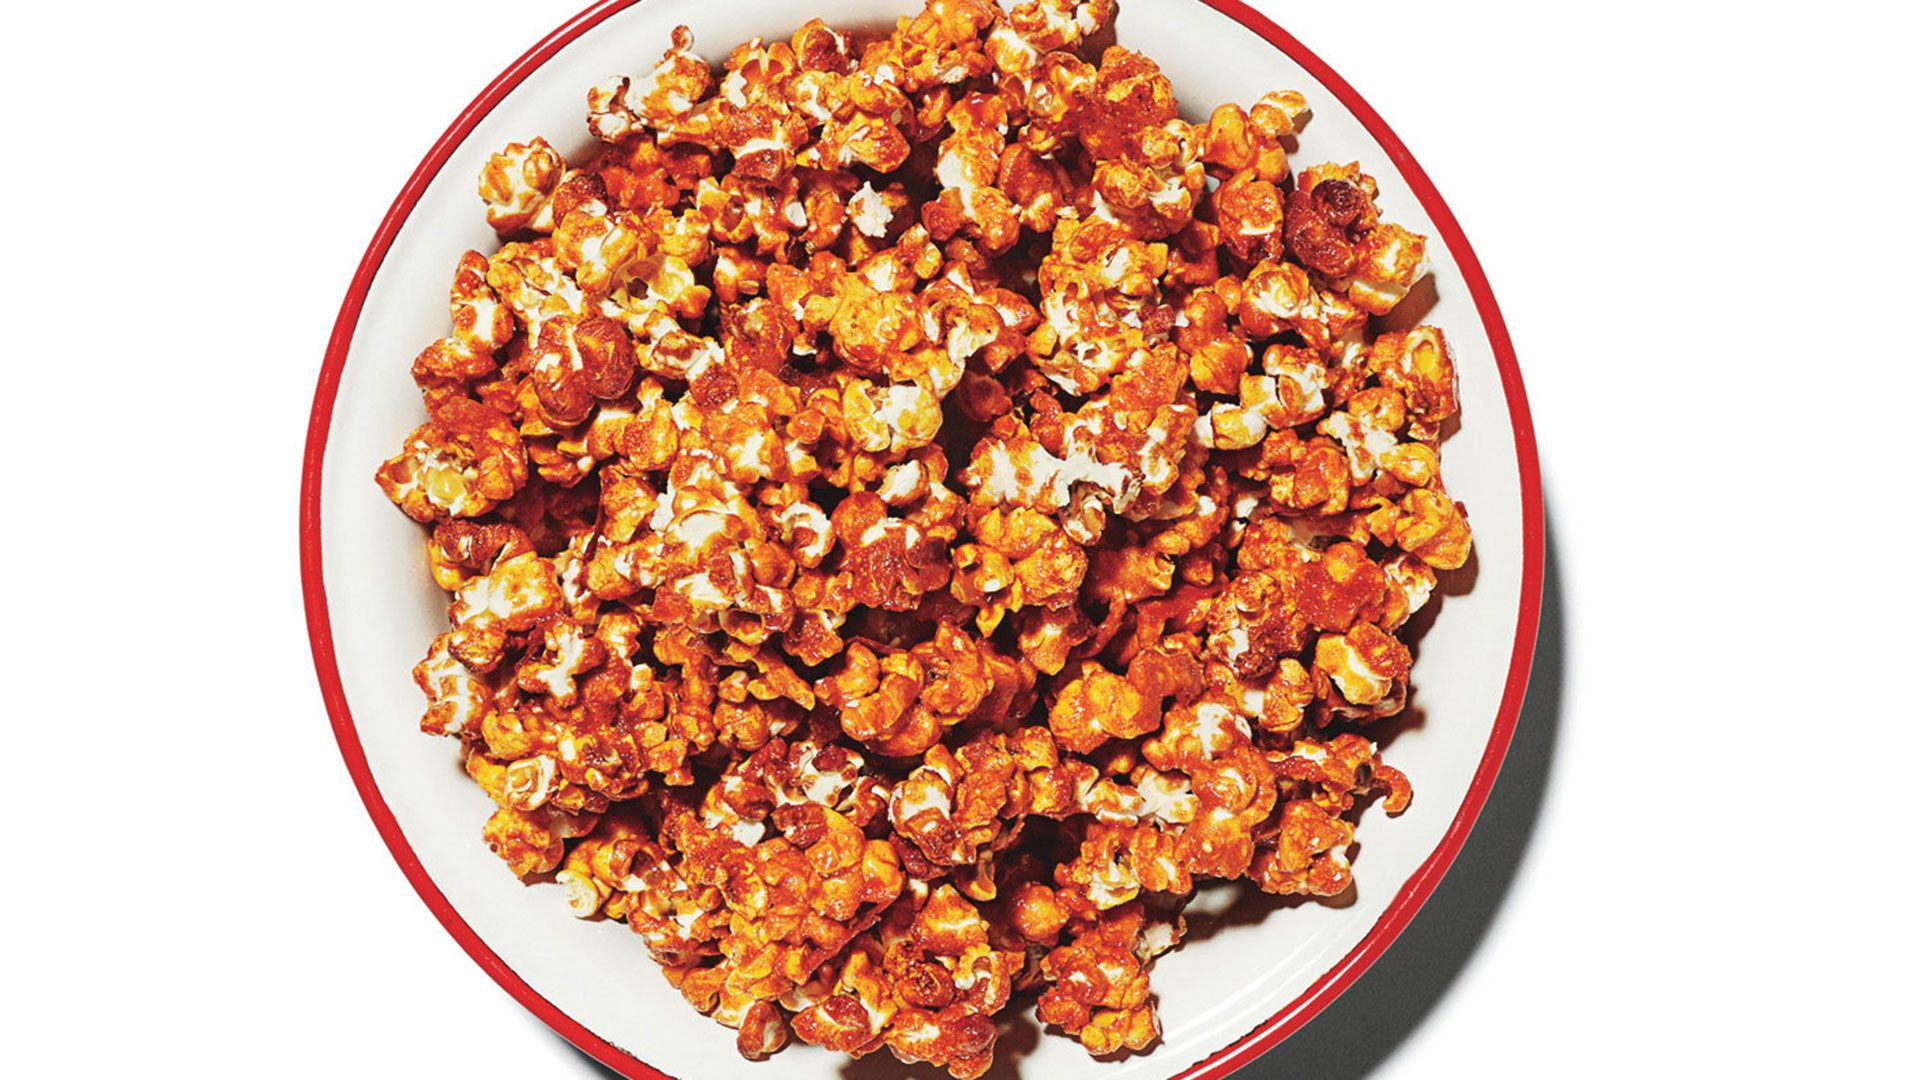 The Sweetest, Saltiest, Buffalo-Iest Popcorn Ever